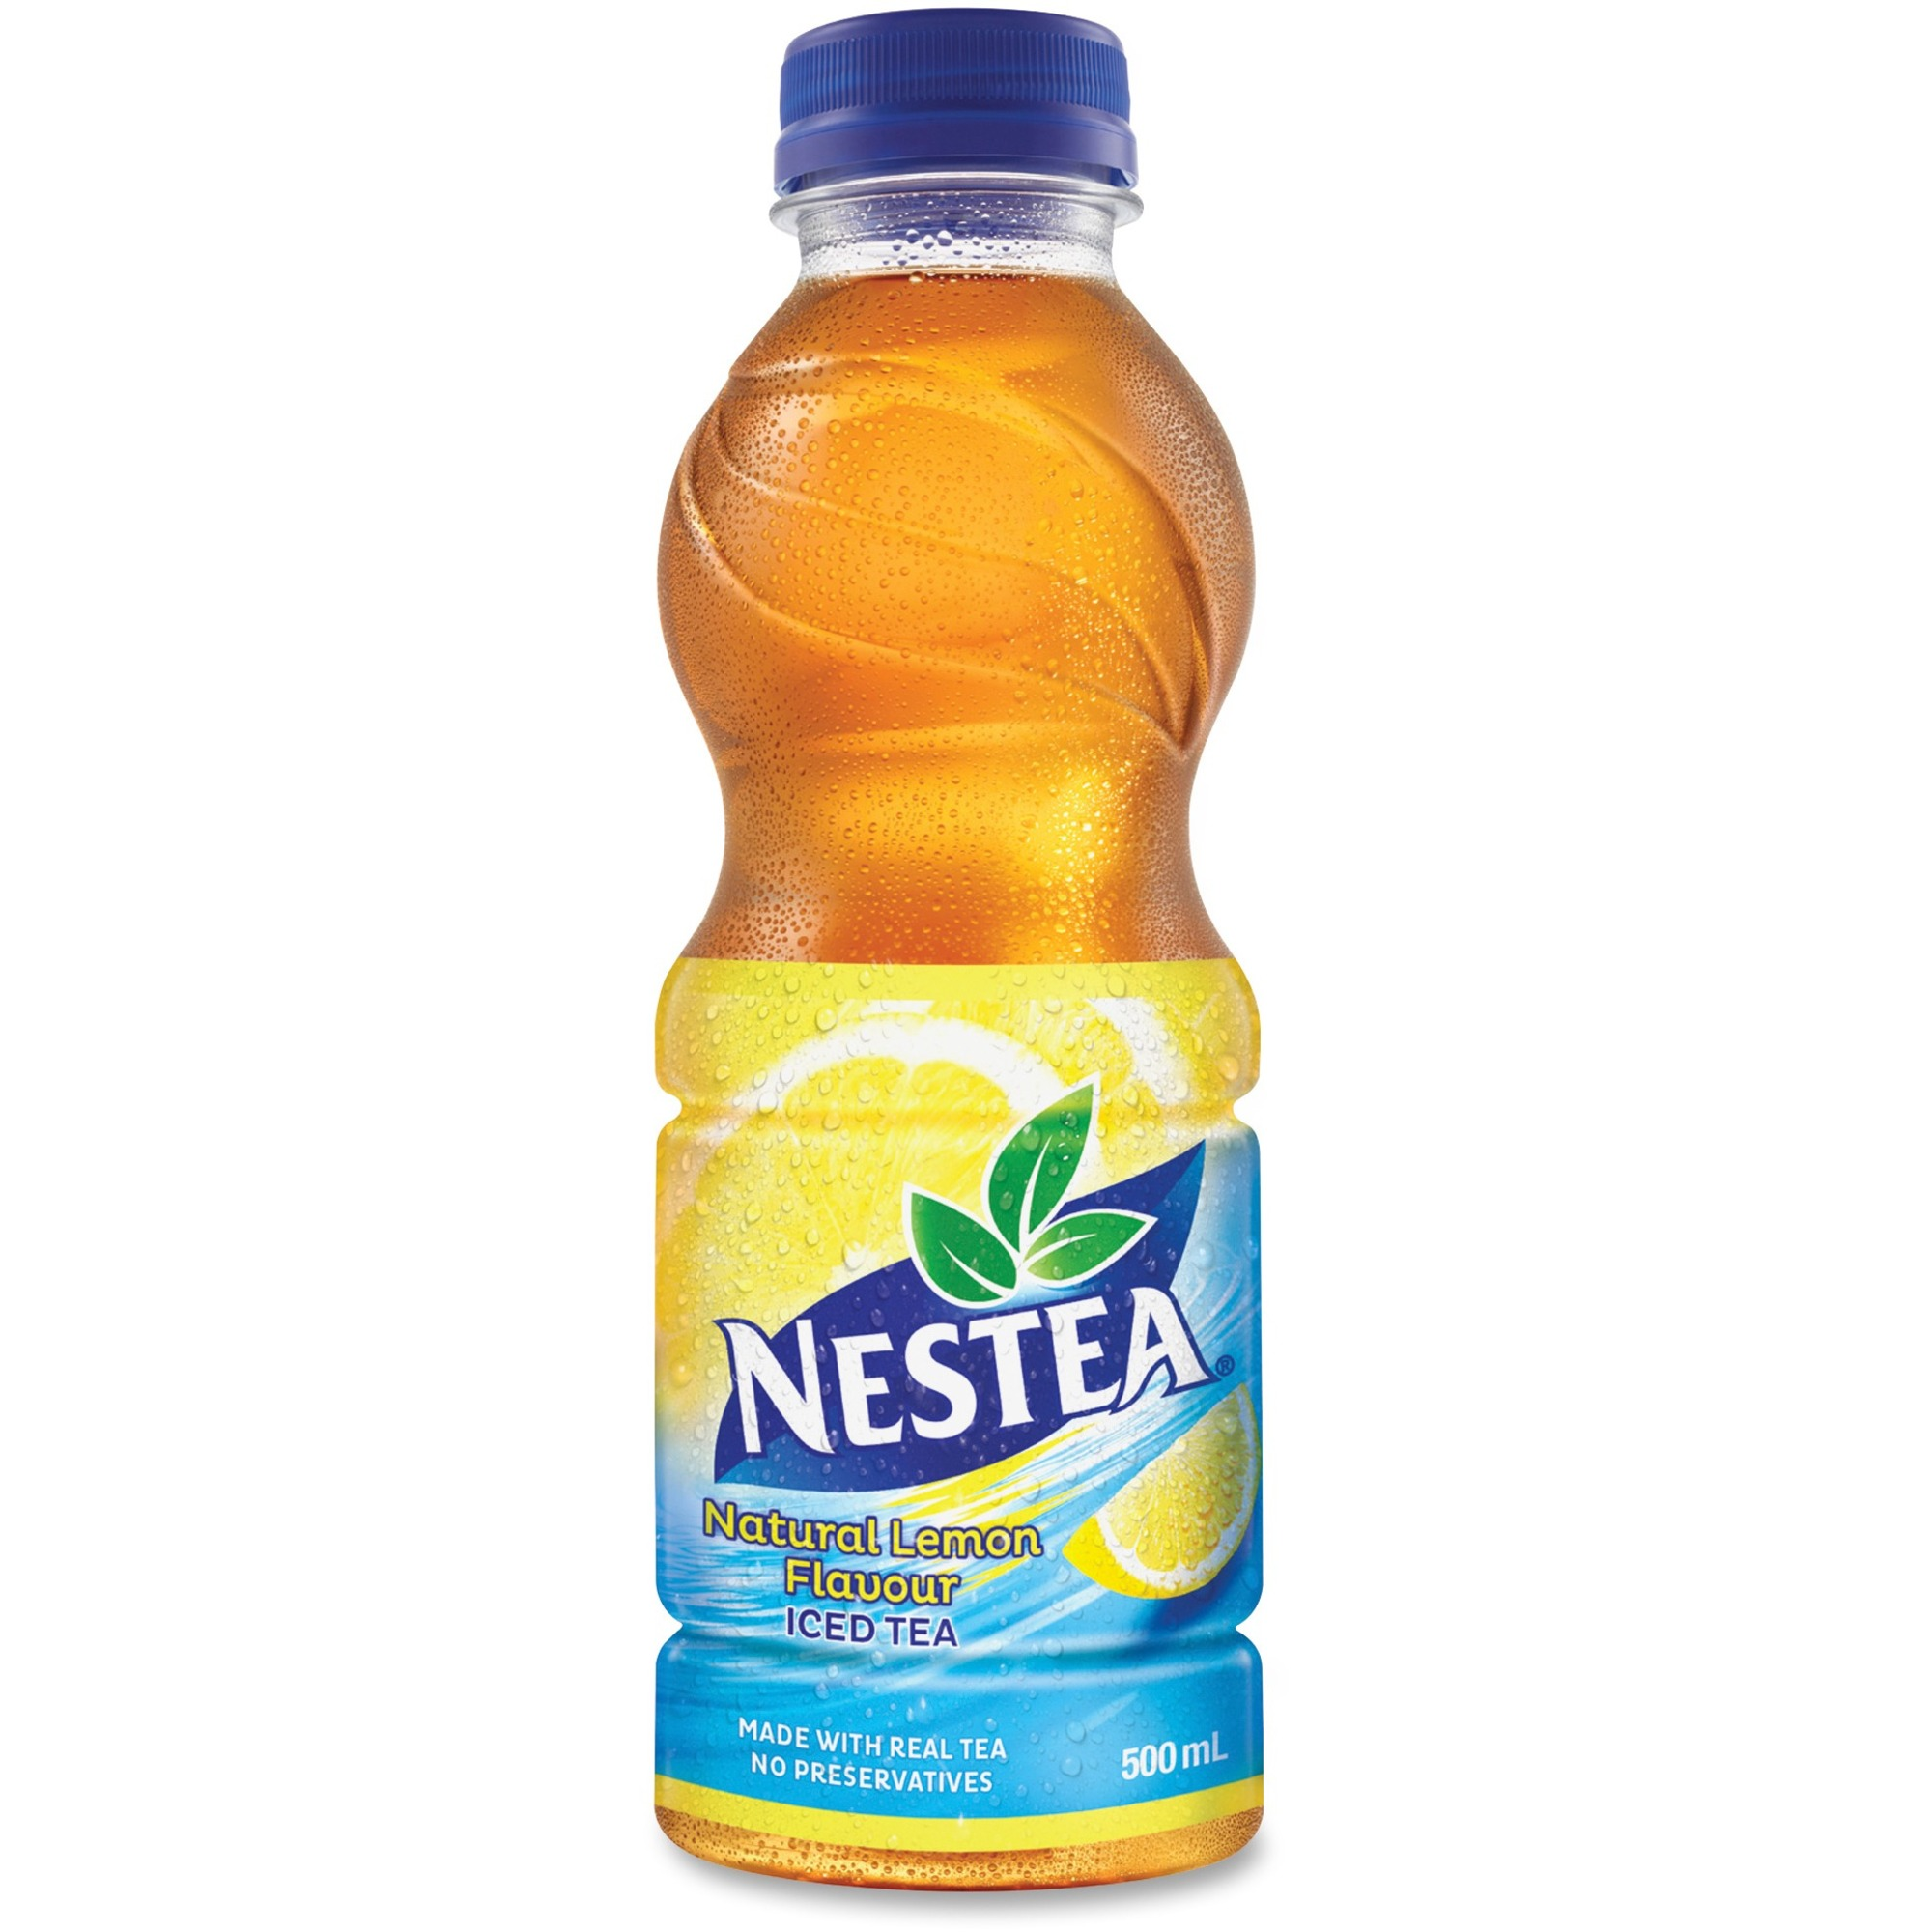 Nestea Natural Lemon Iced Tea Drink - Ready-to-Drink ... Nestea Can